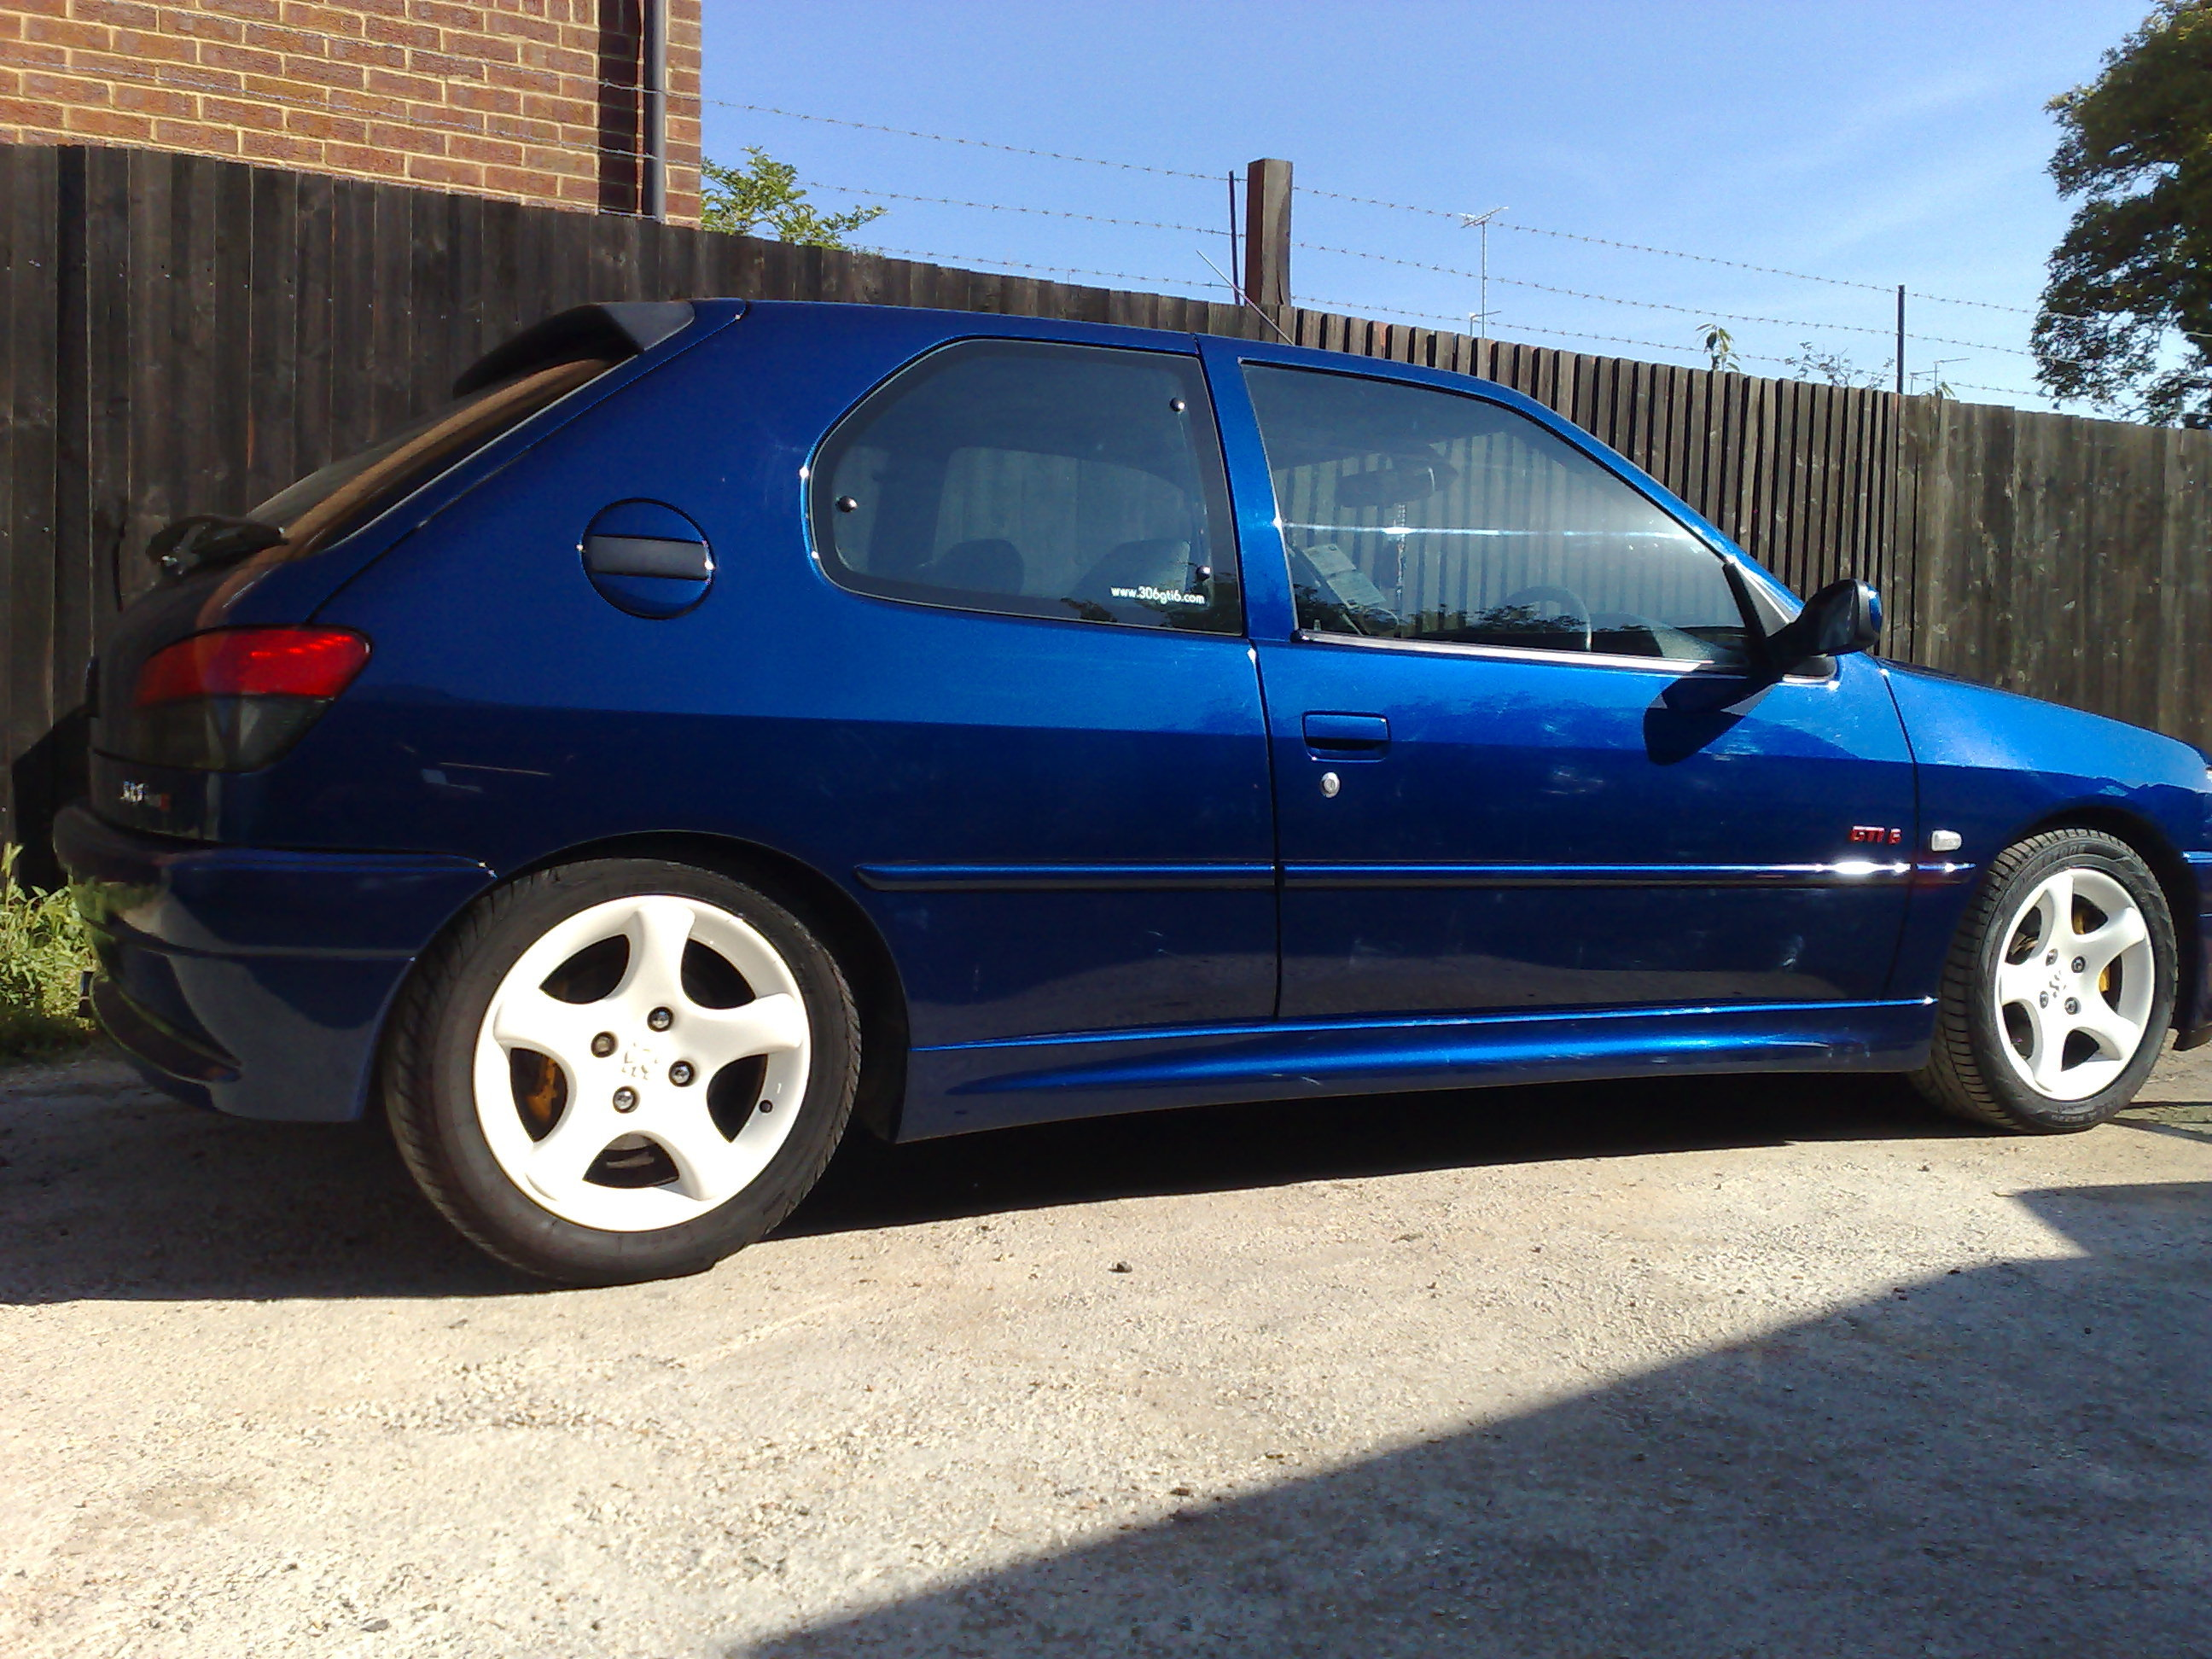 Mnpr4 1999 Peugeot 306 Specs, Photos, Modification Info At